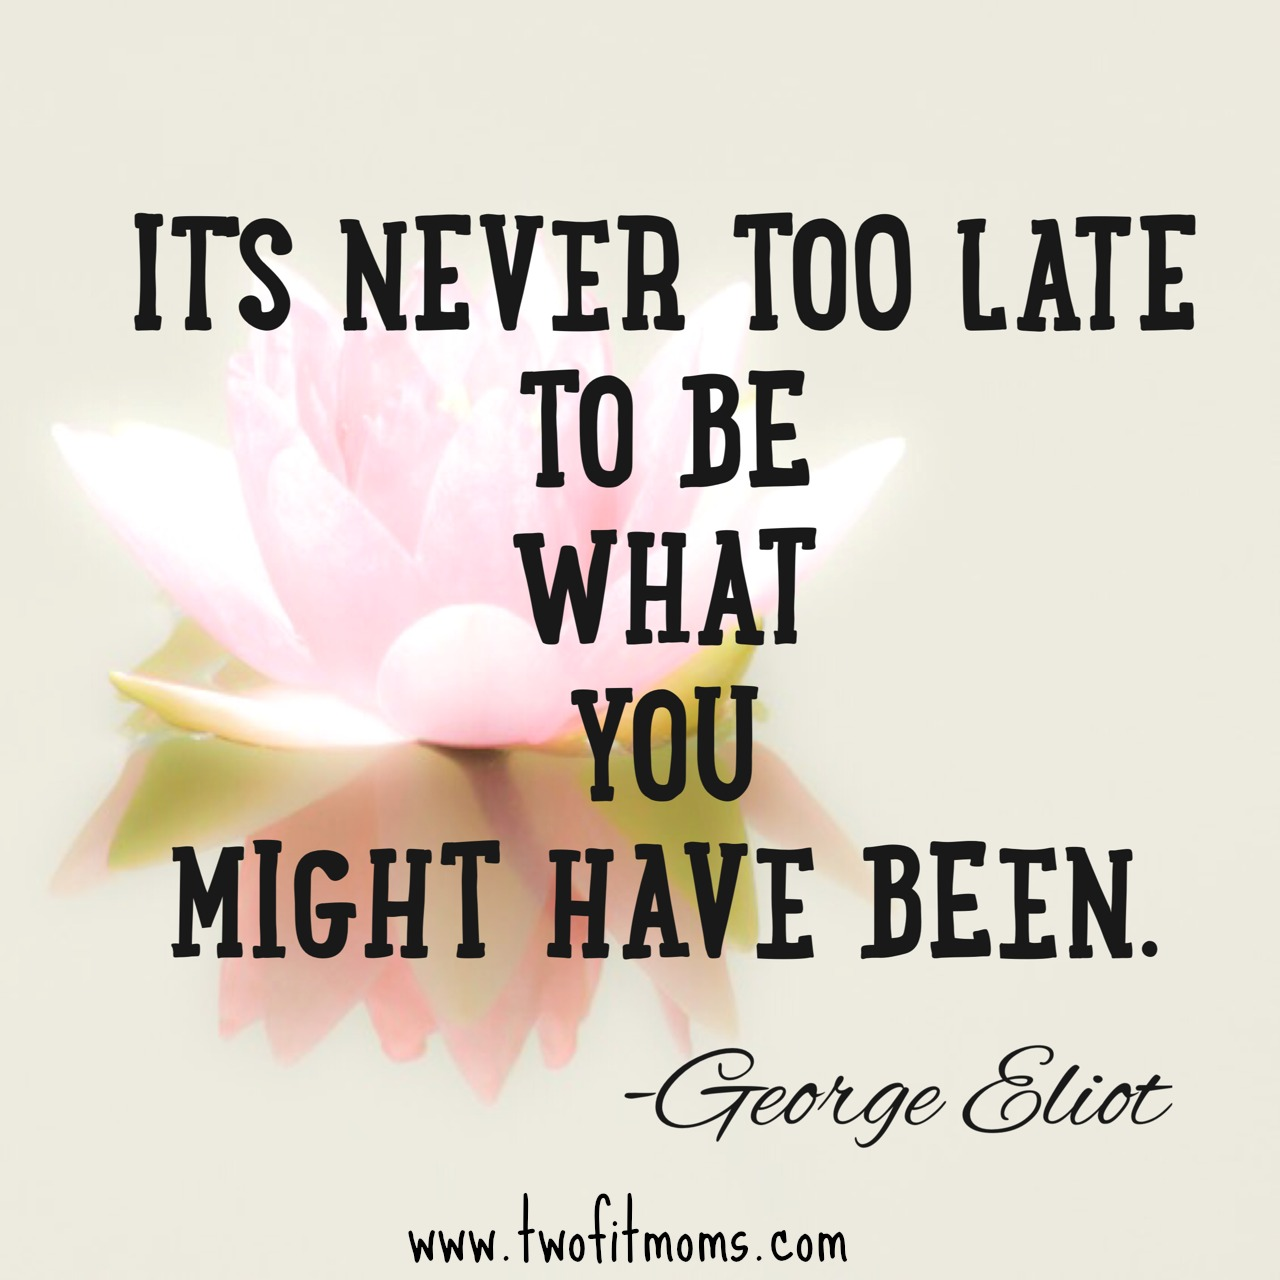 Late Quotes Two Fit Moms » It's Never Too Late